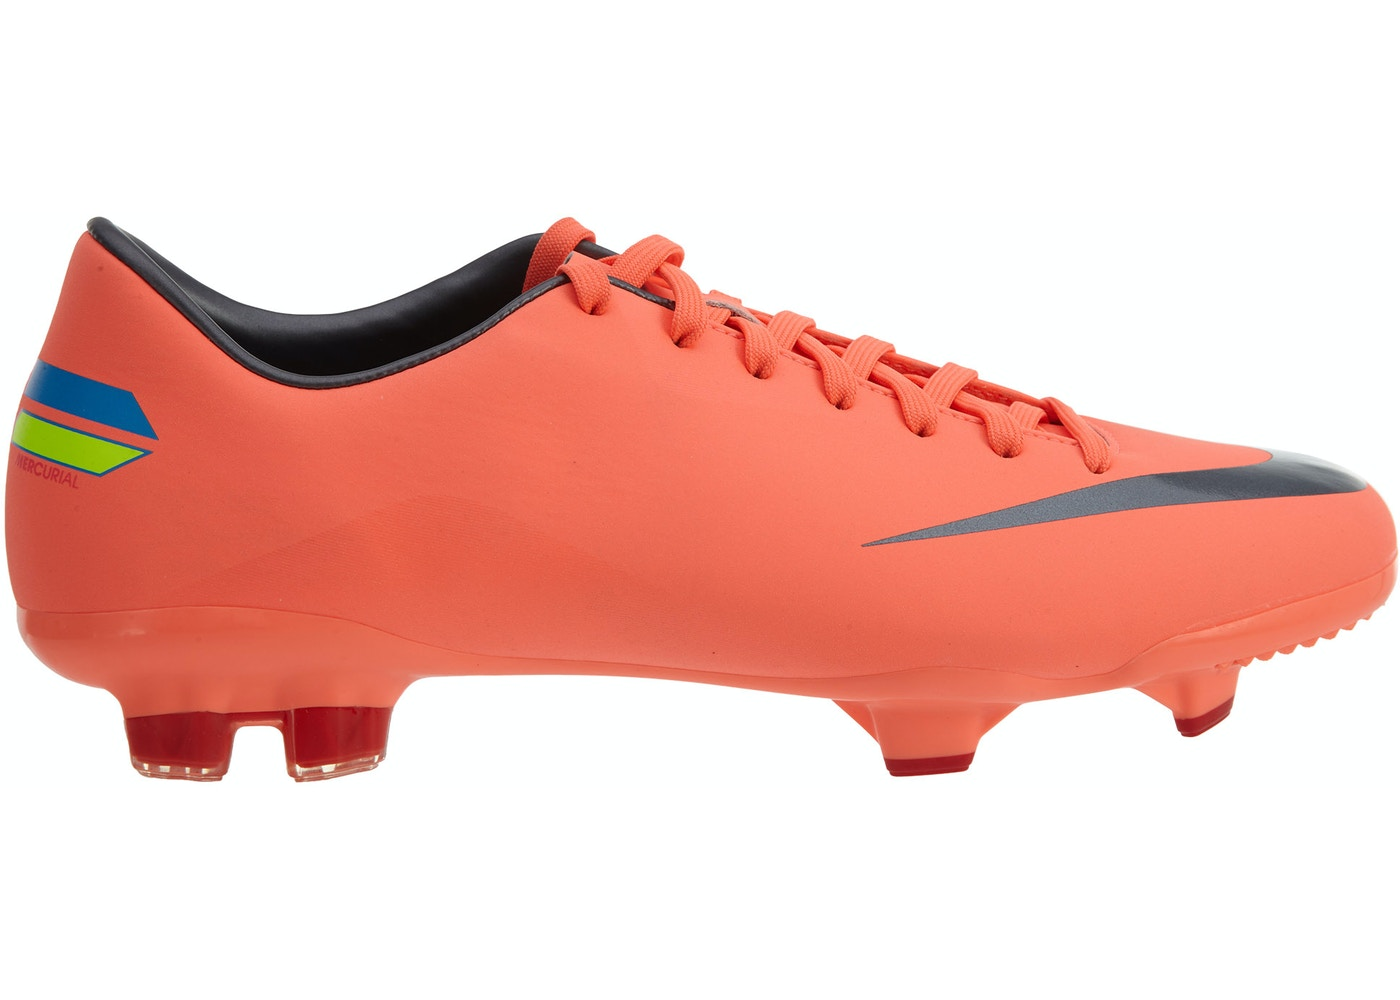 6204200fbb Nike Mercurial Glide III Fg Brght Mng Mtlc Drk Gry-Chllng - 509123-800